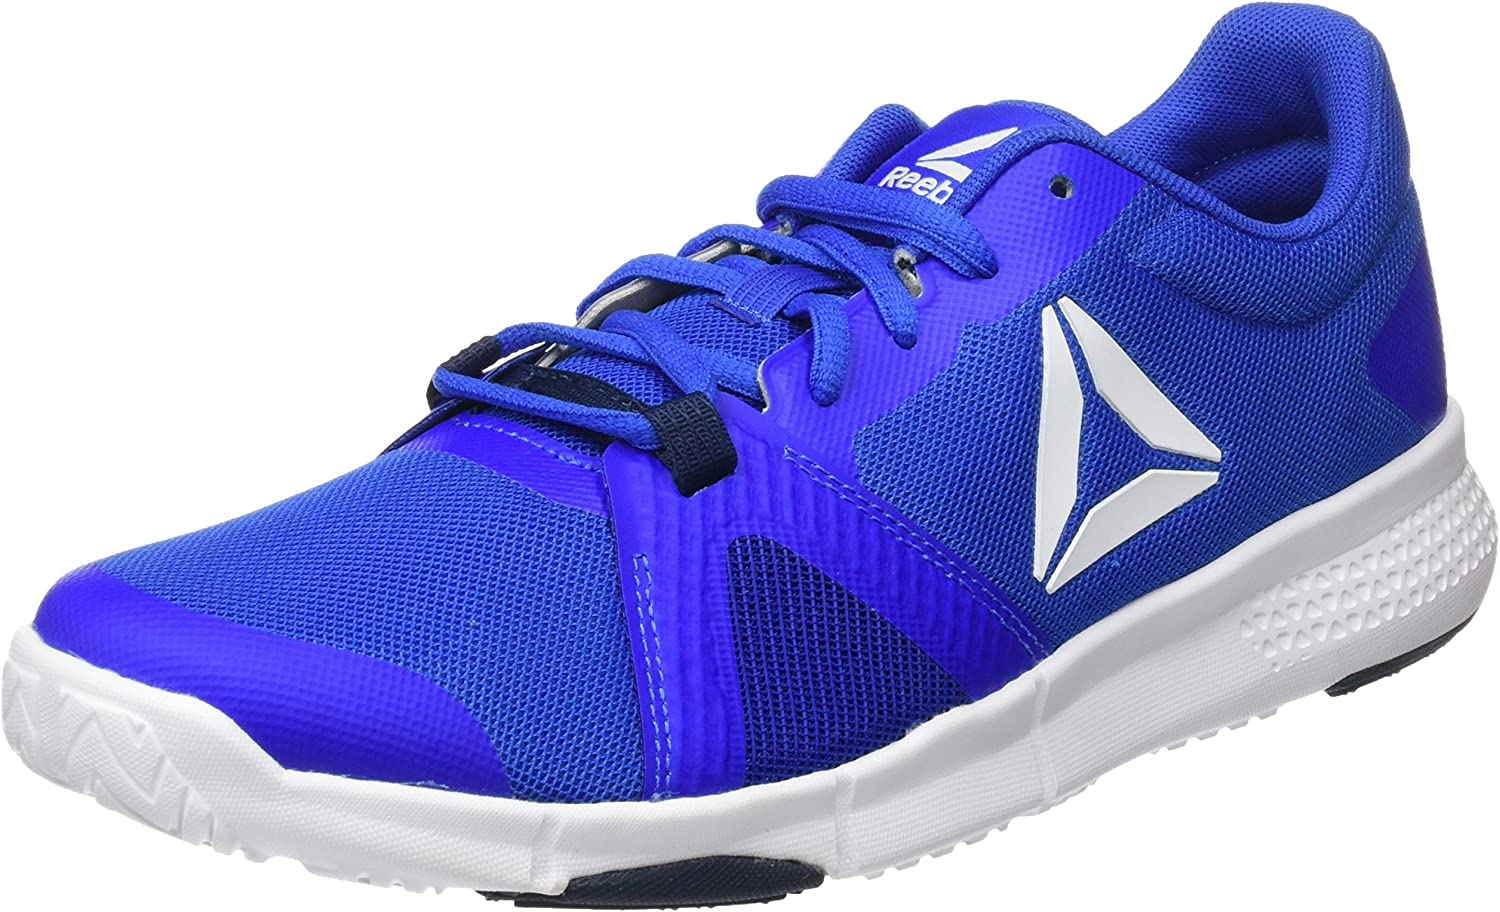 Reebok Men's Trainflex Lite Fitness shoes